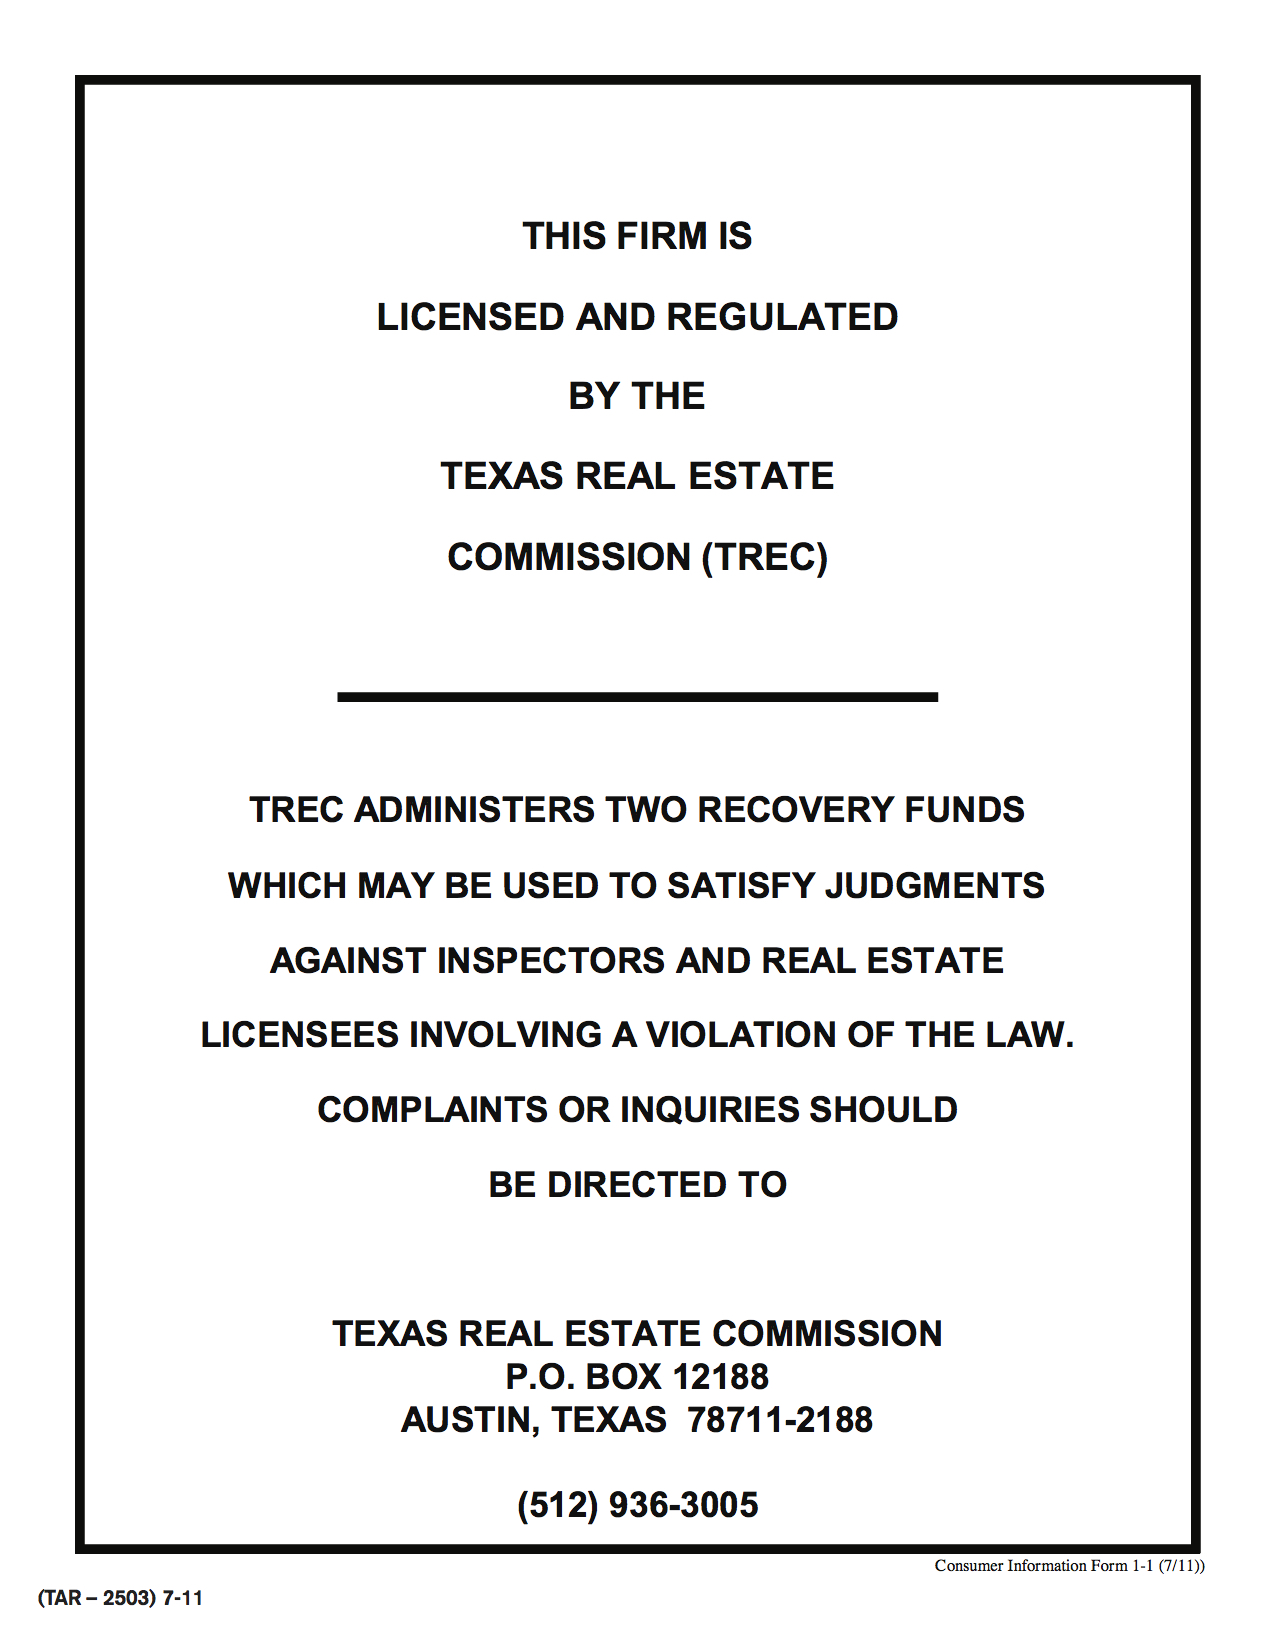 trec consumer information form 1 1 hobit fullring co Leasing Assistant Resume Template about robles real estate